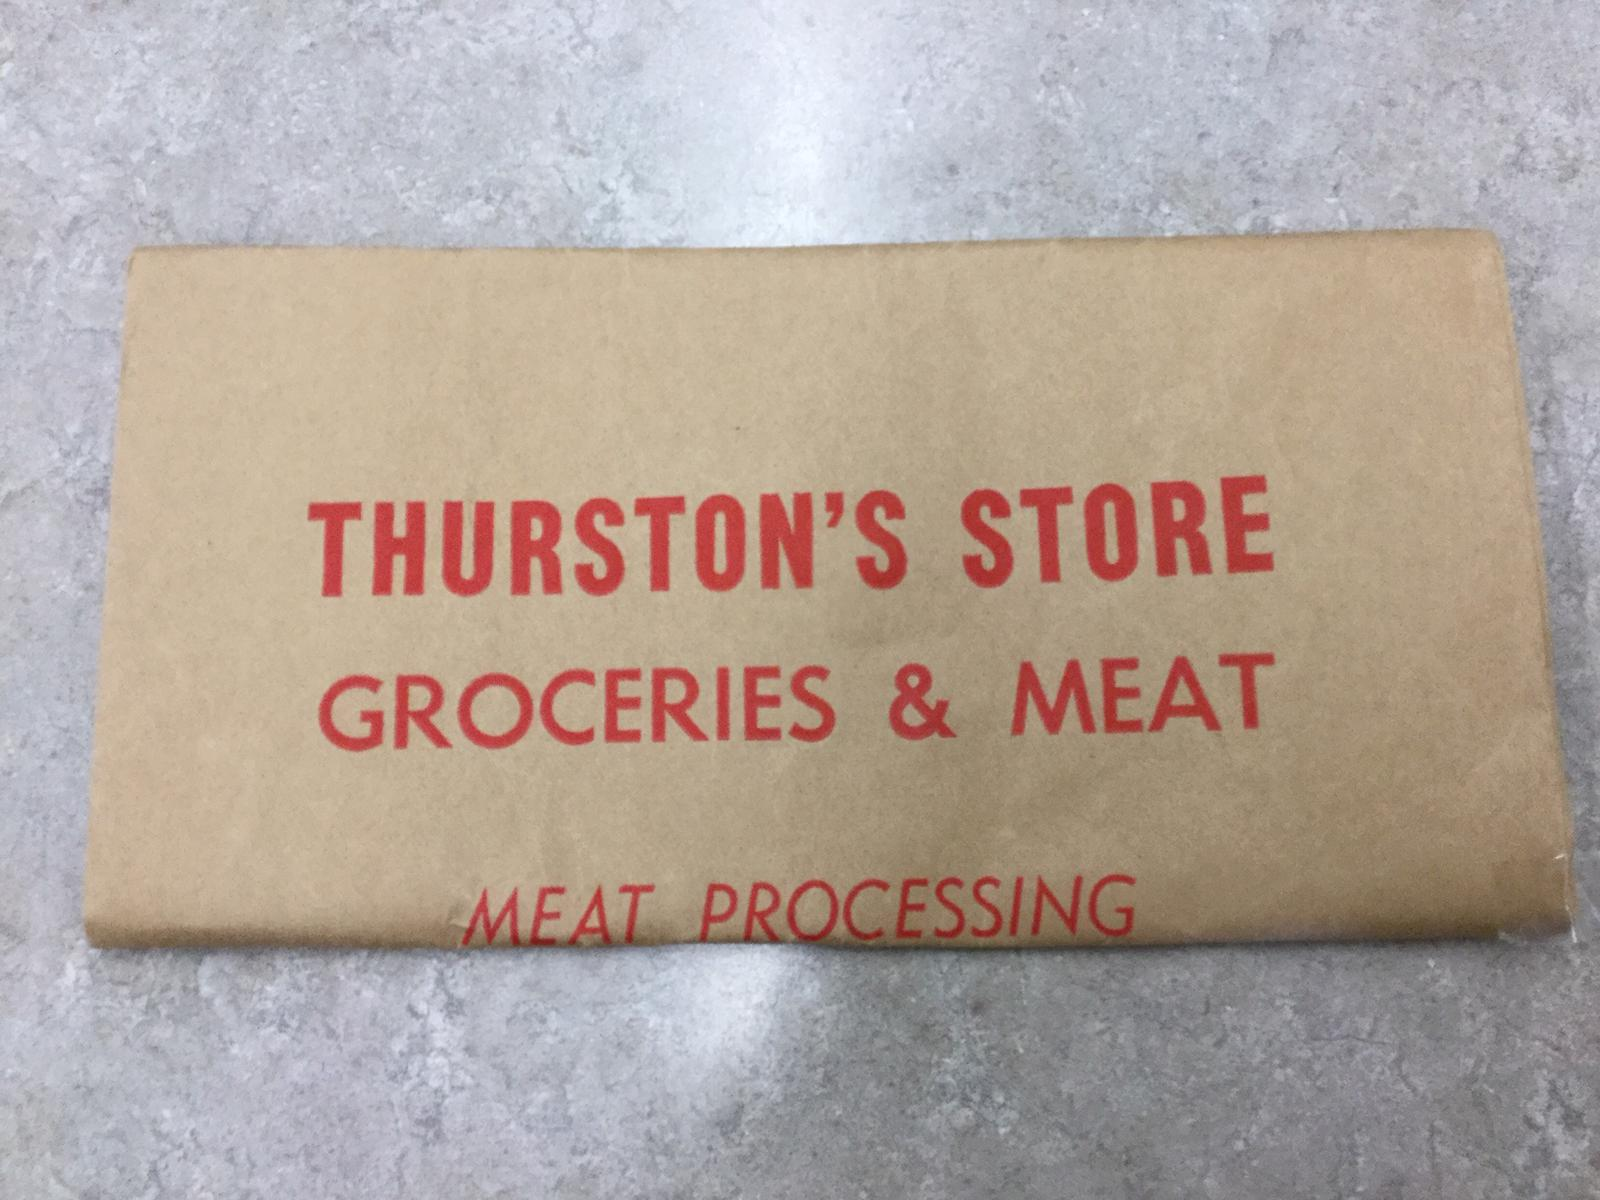 Additional materials - Thurston's Store grocery bag